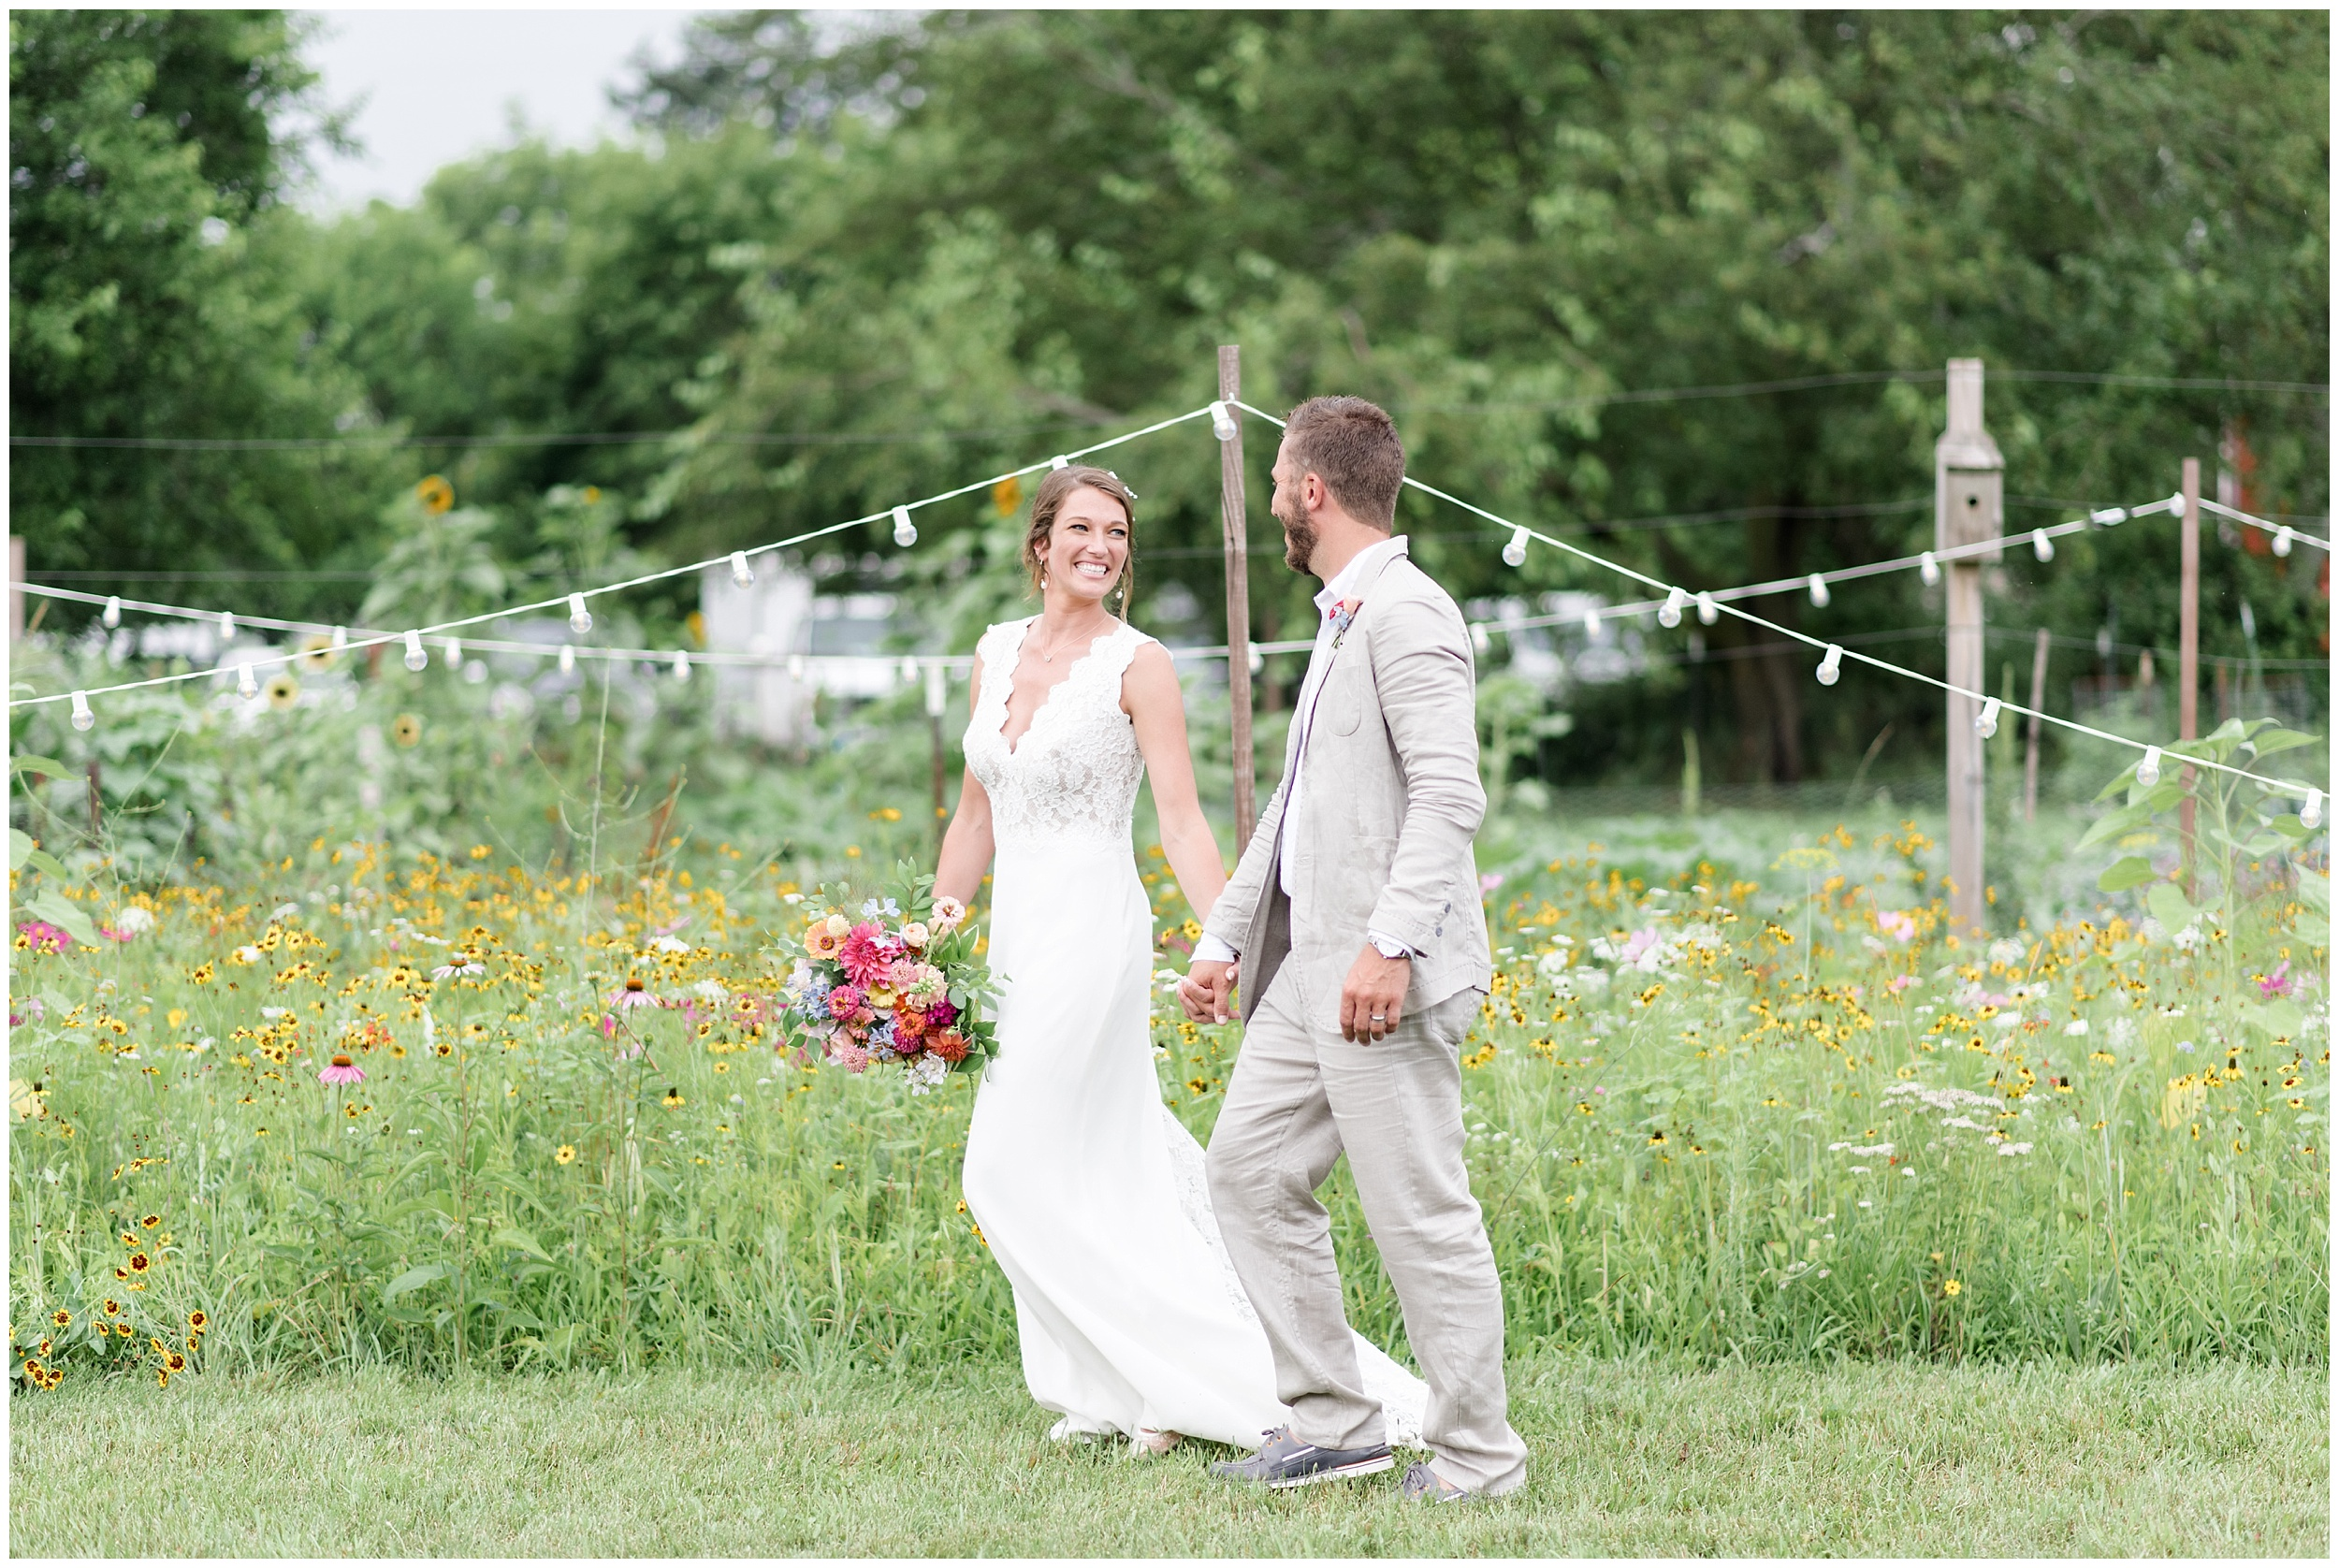 Whimsical-Ethereal-July-Kalamazoo-Wedding-Bright-Airy-Documentary-Milwaukee-Photographer_0079.jpg